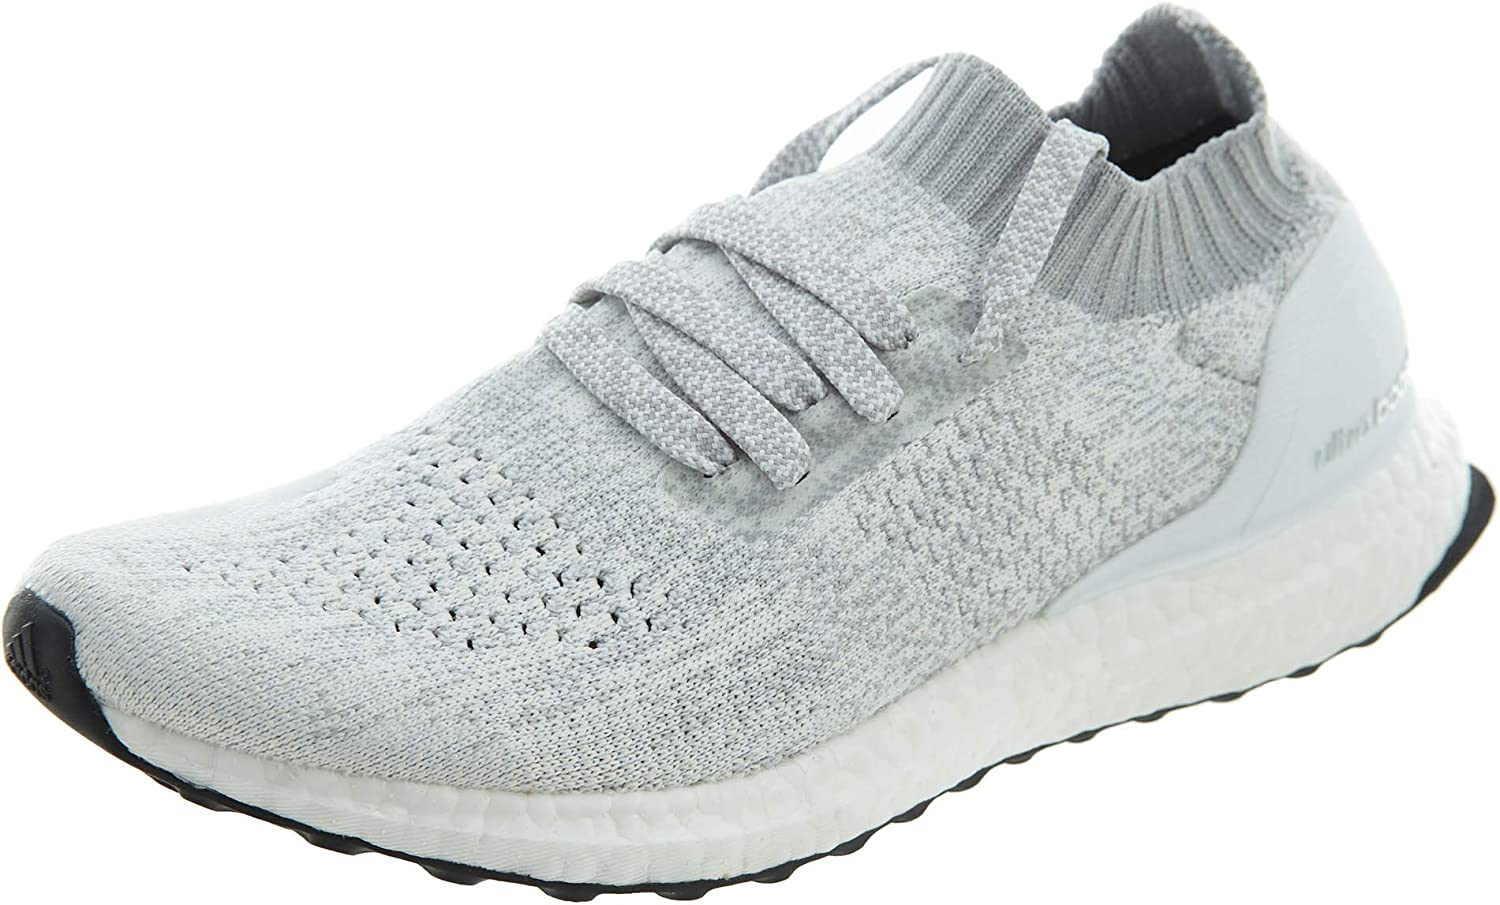 adidas Men s Ultraboost Uncaged Running Shoe White Size 10.5 M US